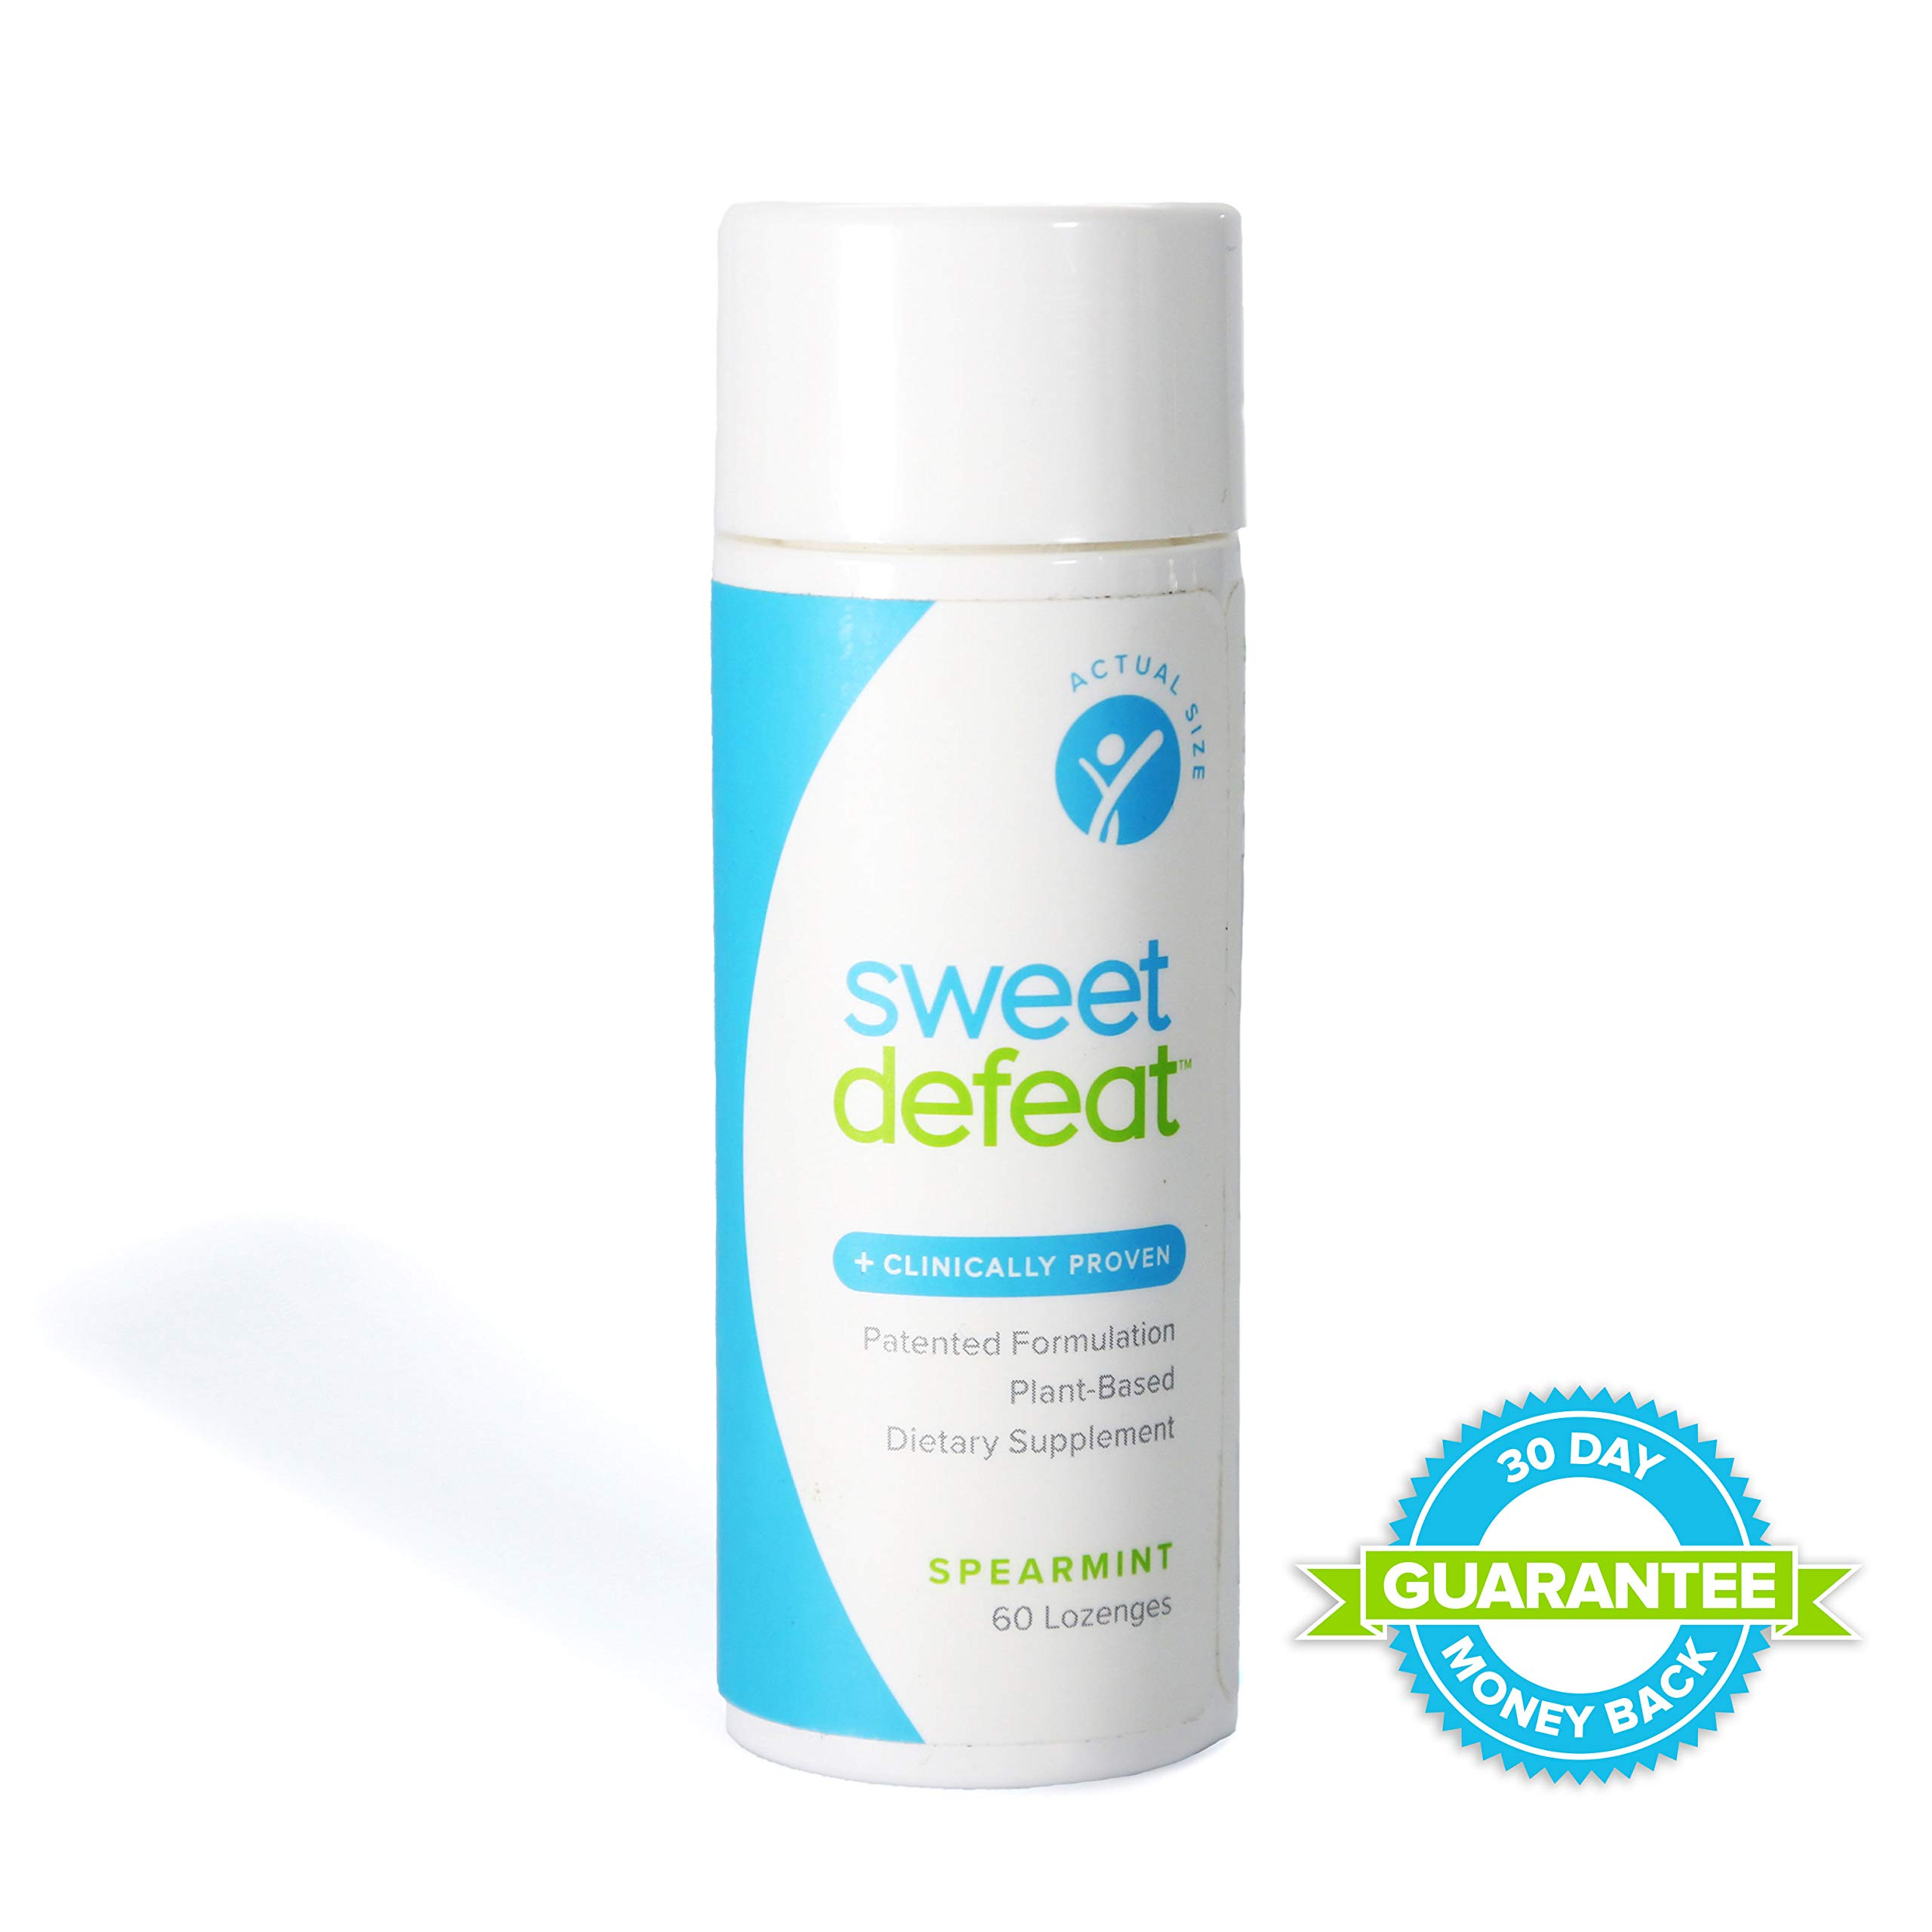 Sweet Defeat - Reduce Sugar Cravings in Seconds, Made with Natural Gymnema Sylvestre Extract That Controls and Reduces Desire for Sweet Food - 60 Lozenges ... ... by Sweet Defeat